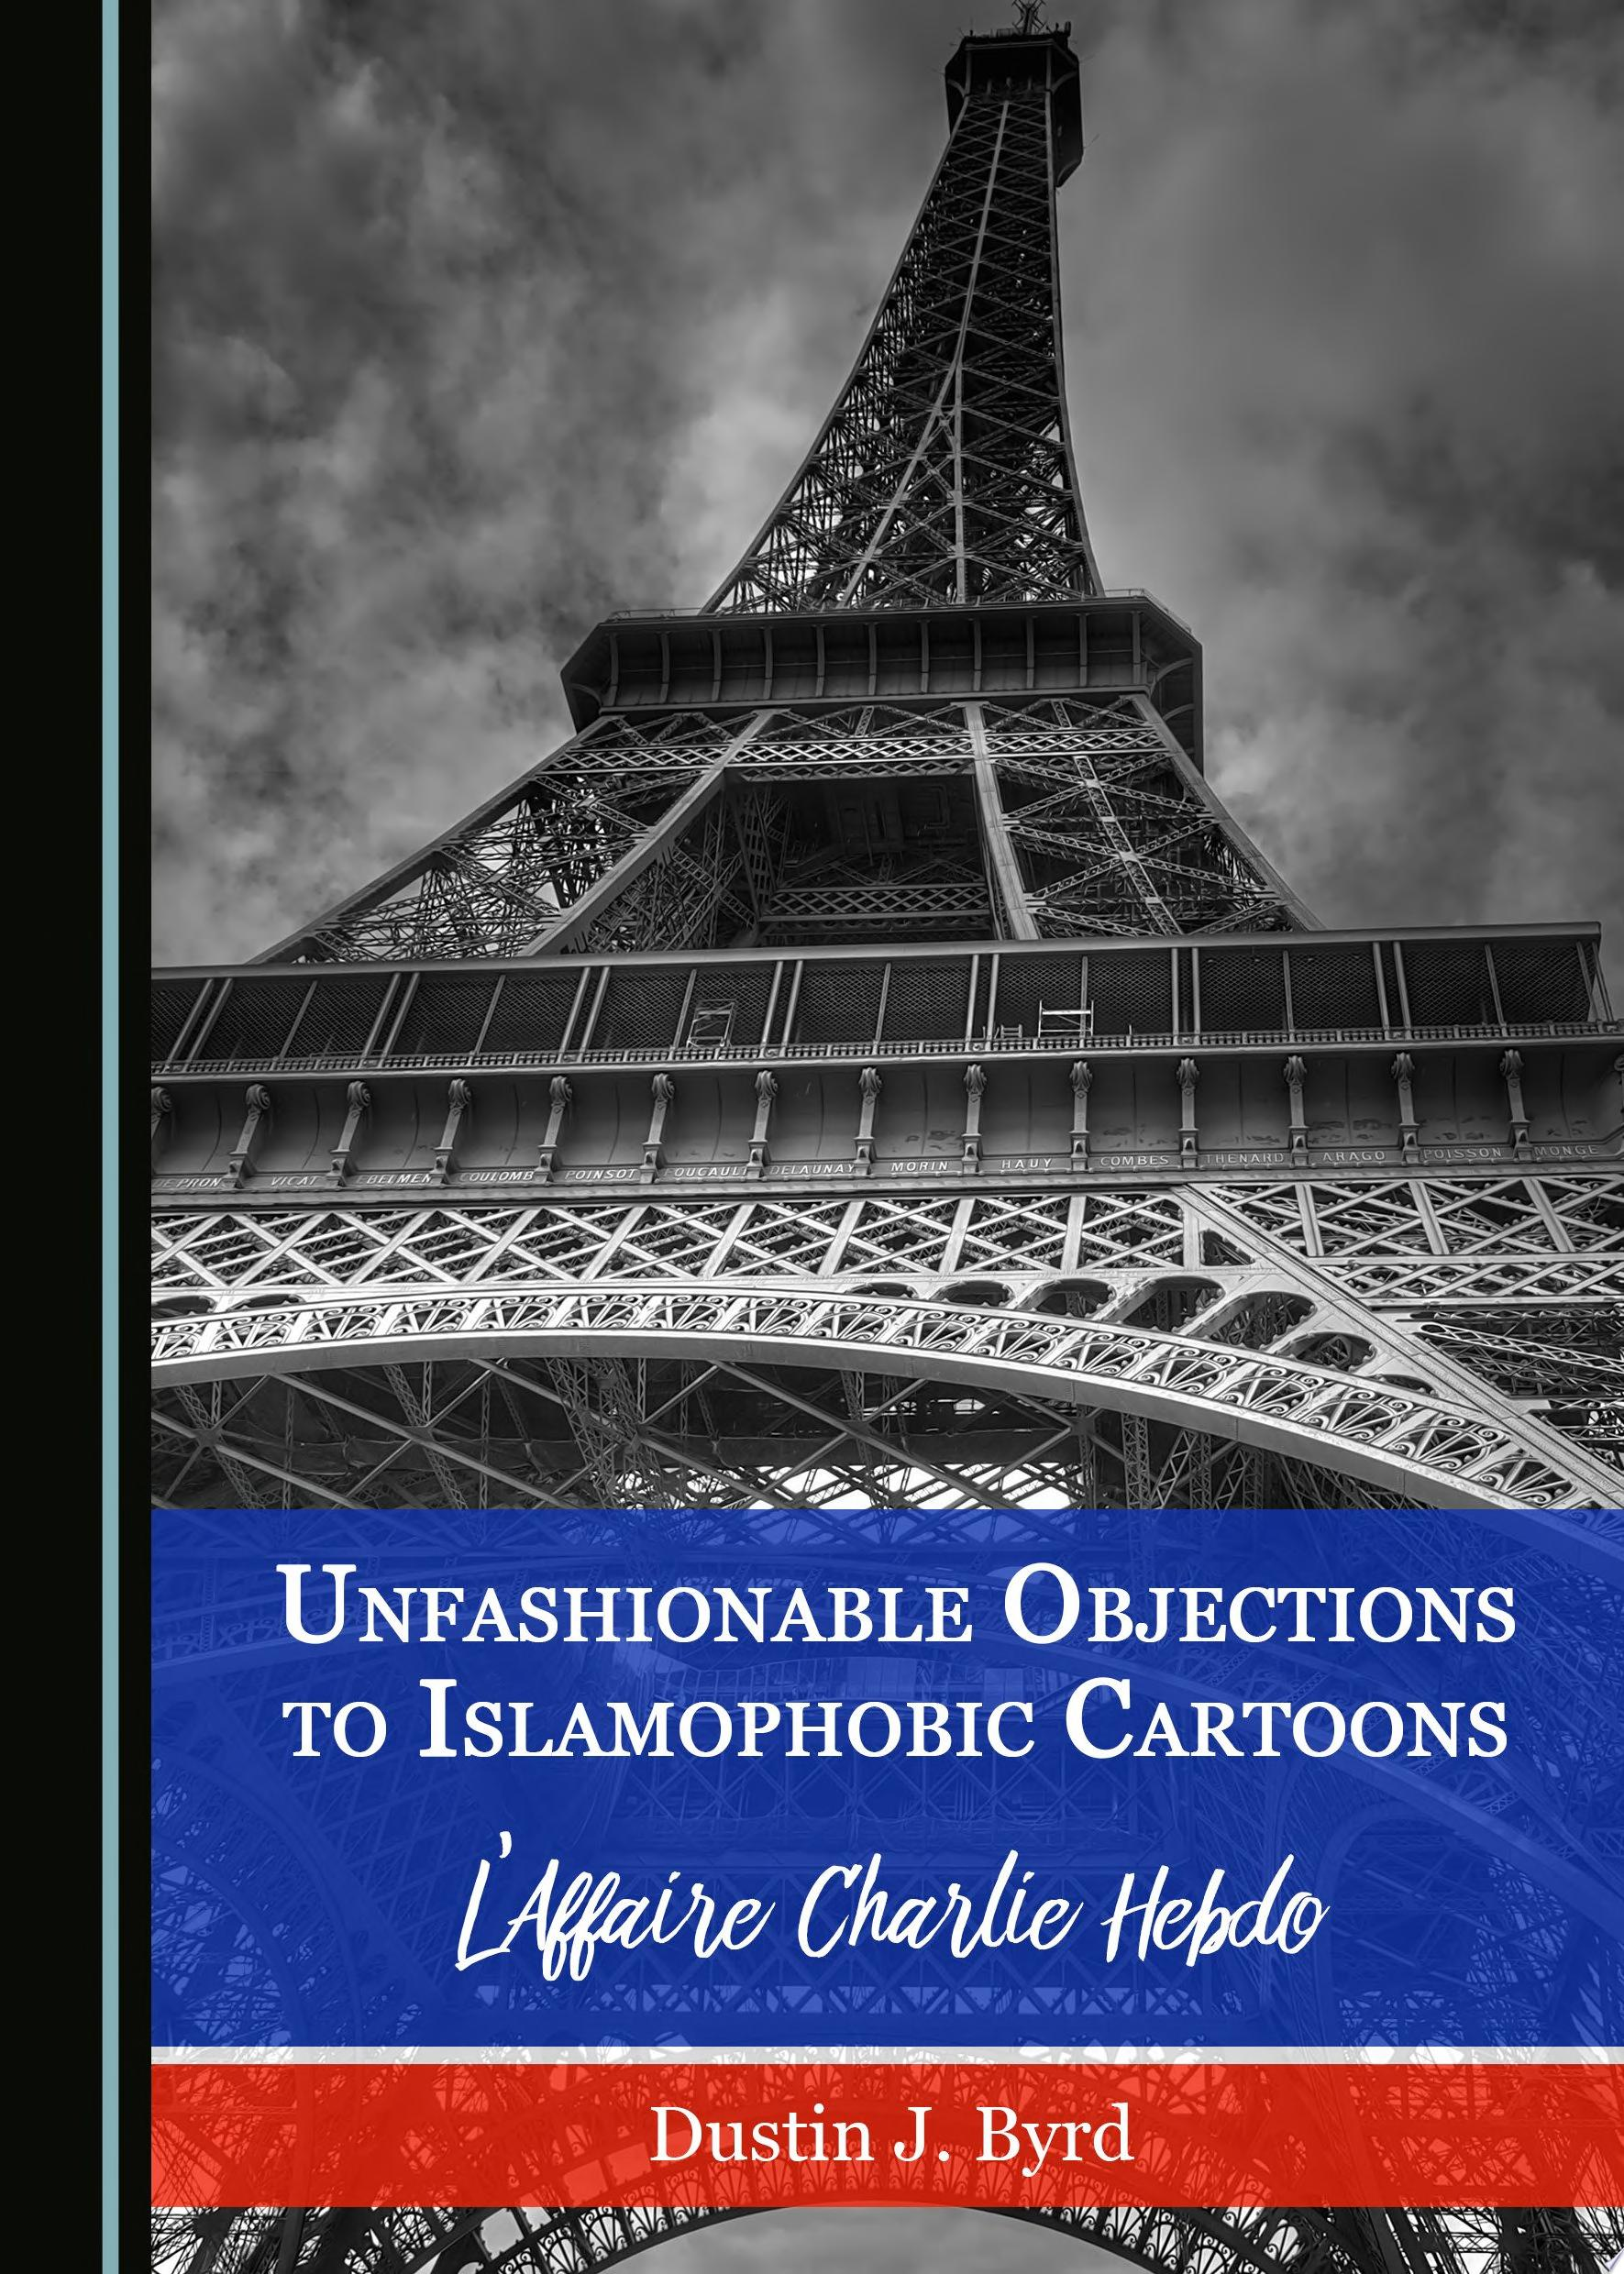 Unfashionable Objections to Islamophobic Cartoons